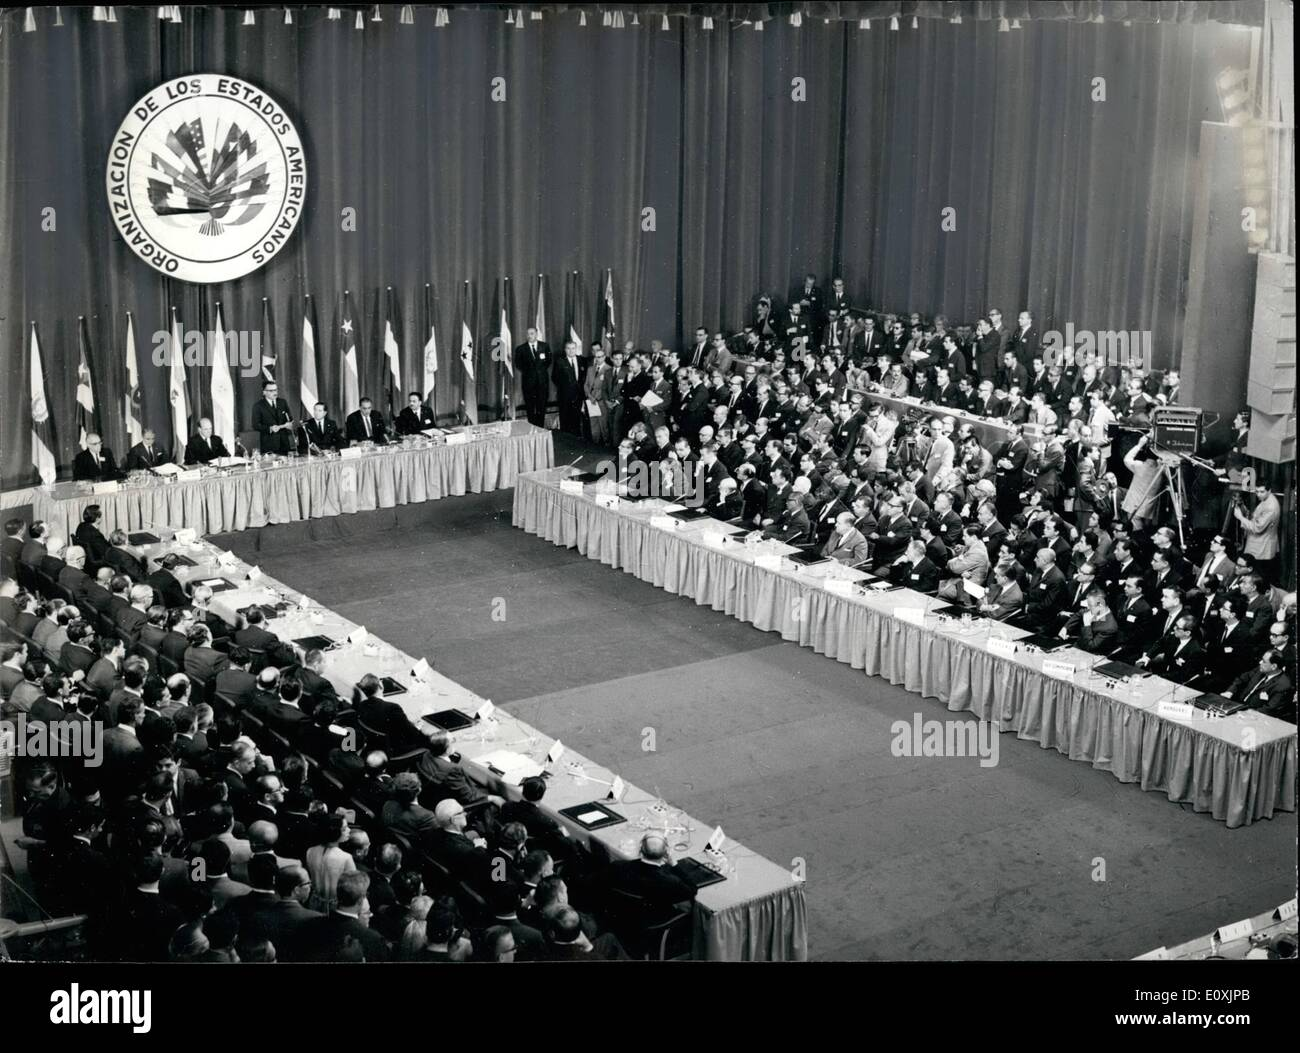 Feb. 02, 1967 - The Chancelours Of All The American Countries Had Their Annual Meeting At Buenos Aires: Buenos Aires, February 16th: Today was solemny inangurated the Third Interamerican ference by Argentinas President General   Ongania at Teatro San Martin and with participation of the Foreign Ministers of all american republics (less Cuba). One of it's main poits will be the reformation of the Charter of the OEA (Organizacion de Estados Americahos) and the preparation of the meeting of the President of the american states, in a next future, as well as it's future policy - Stock Image